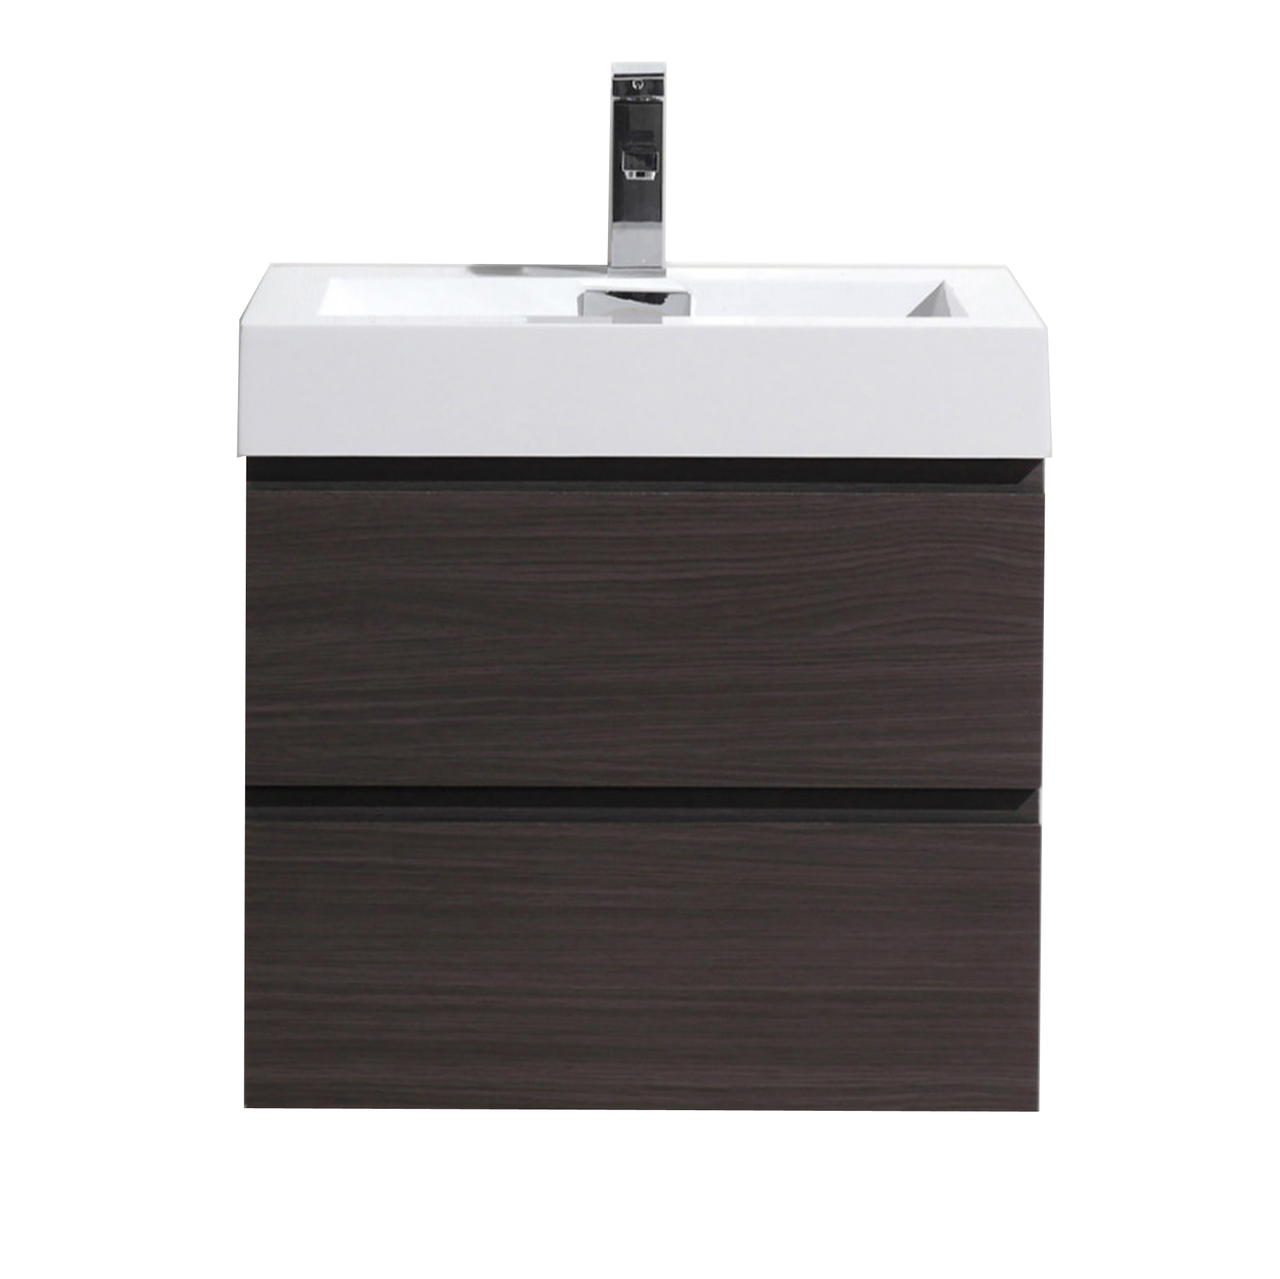 Moreno Mof 30 Dark Grey Oak Wall Mounted Modern Bathroom Vanity With Reeinforced Acrylic Sink Los Angeles Vanity